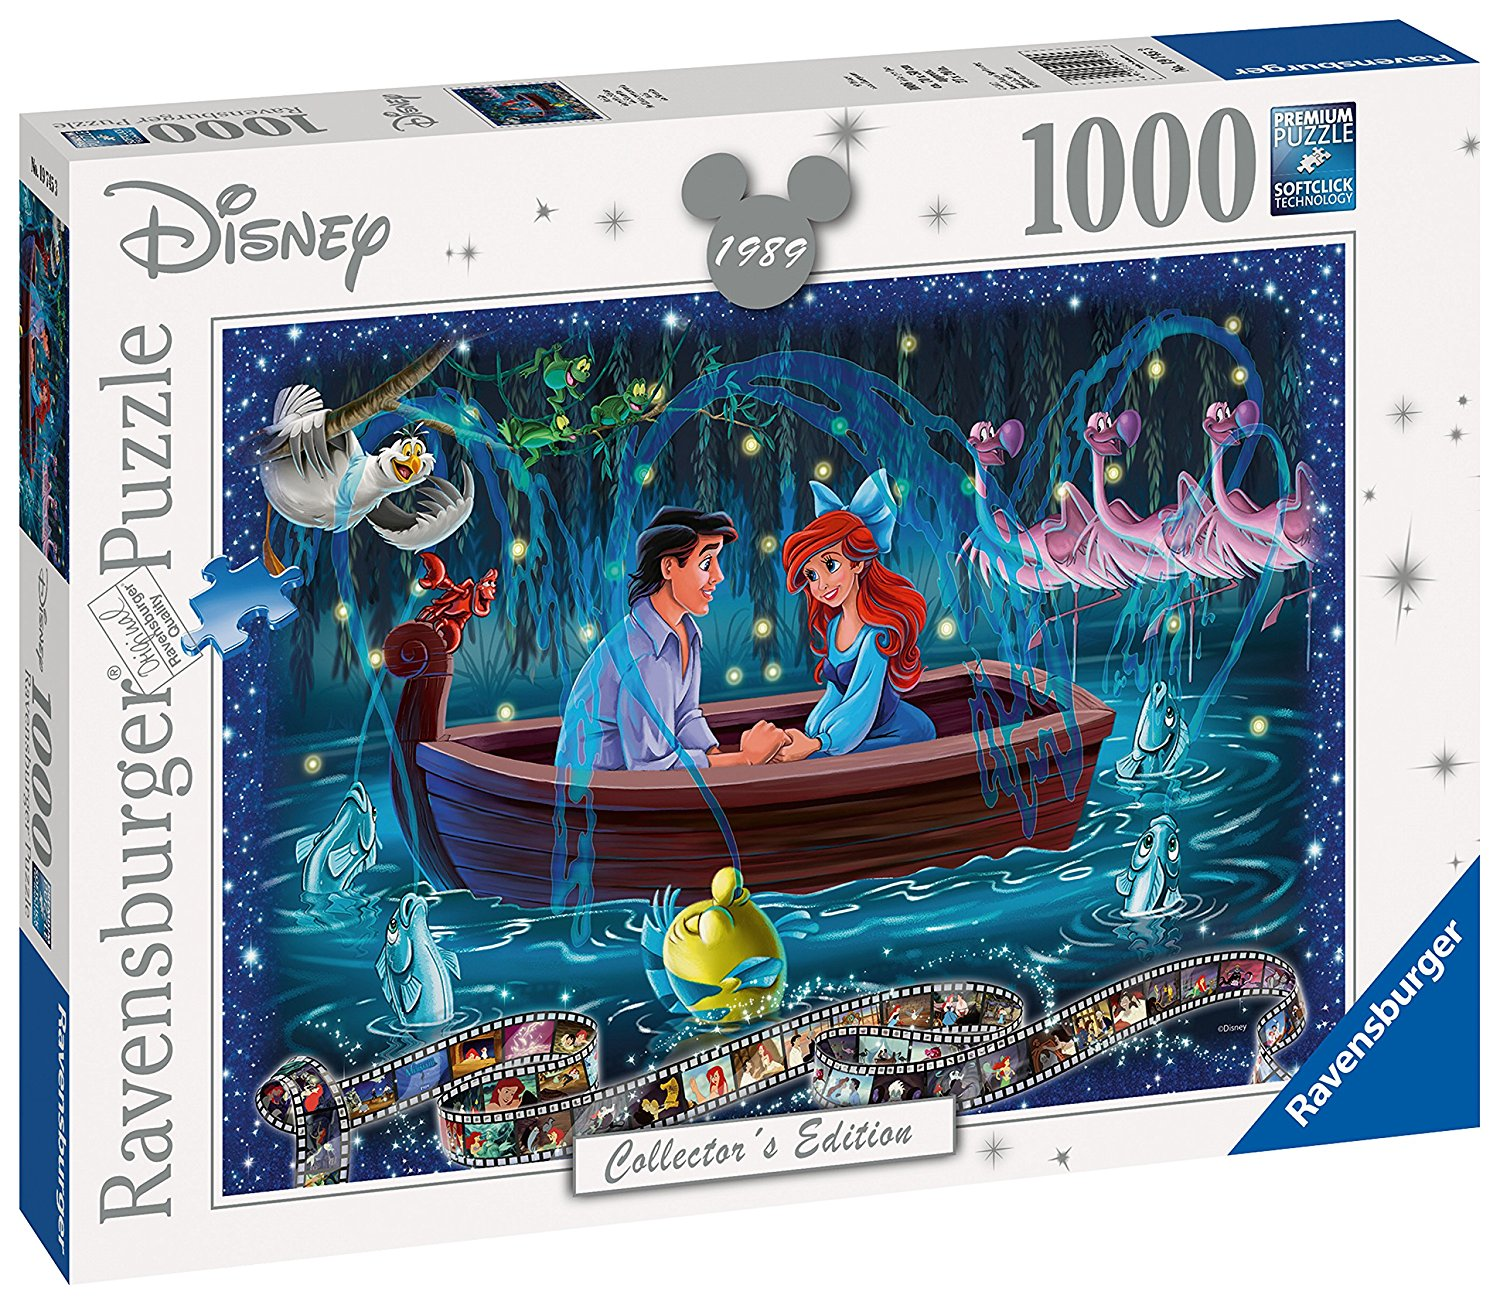 Little Mermaid Disney Collector's Edition, 1000pc